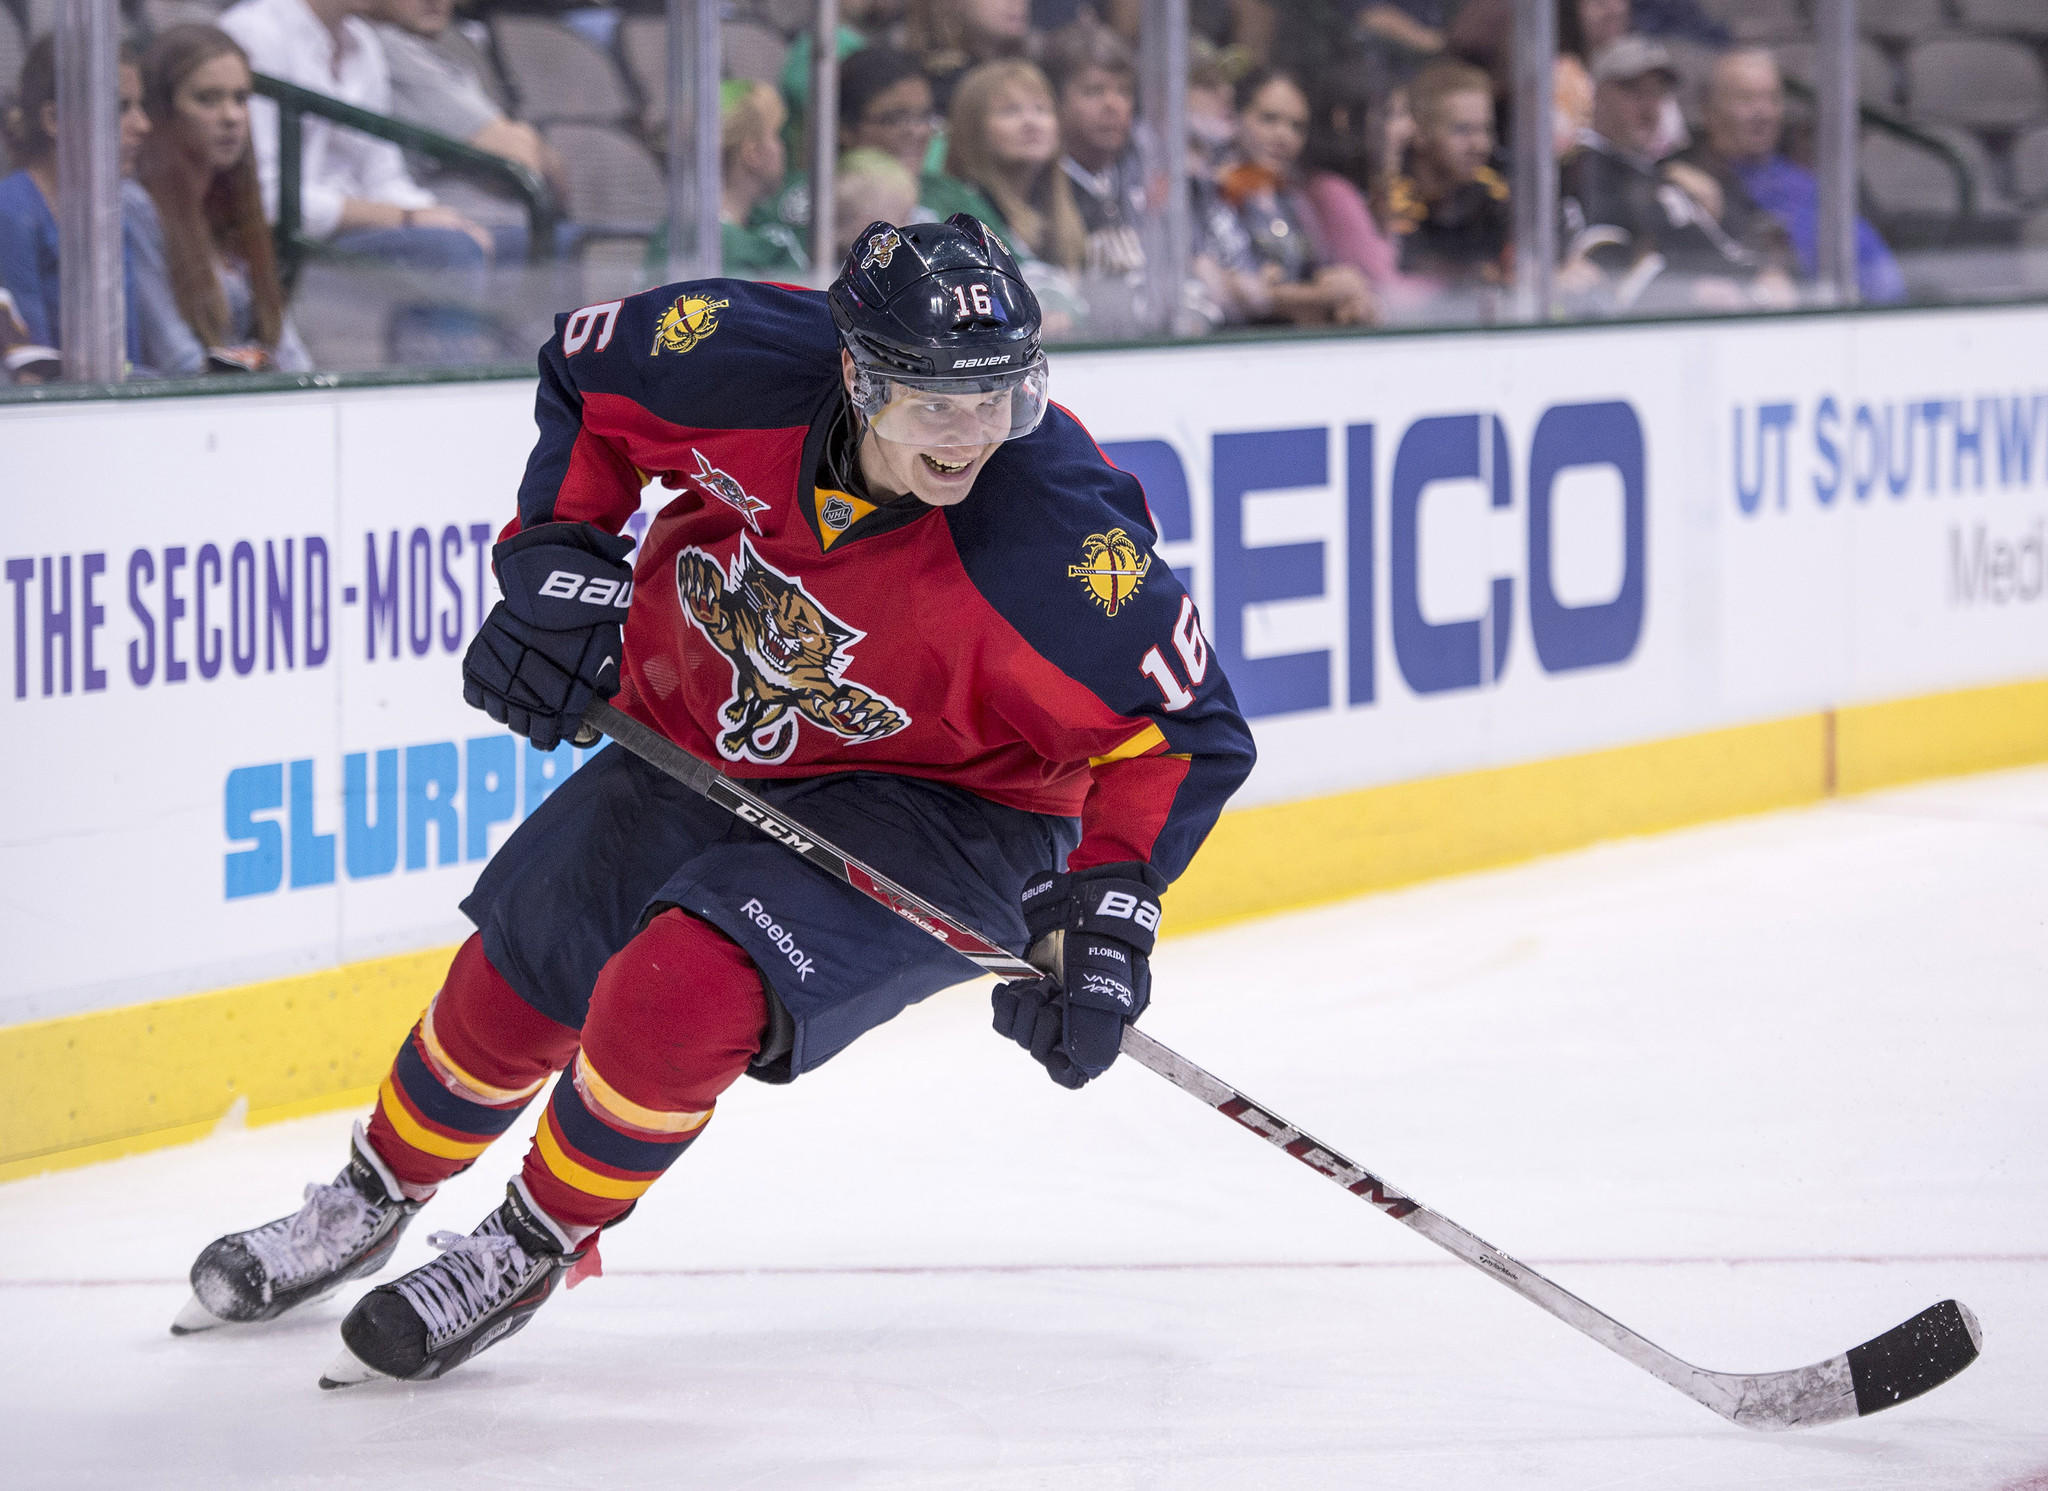 Florida Panthers player Aleksander Barkov will play hockey in the Olympics for Finland.